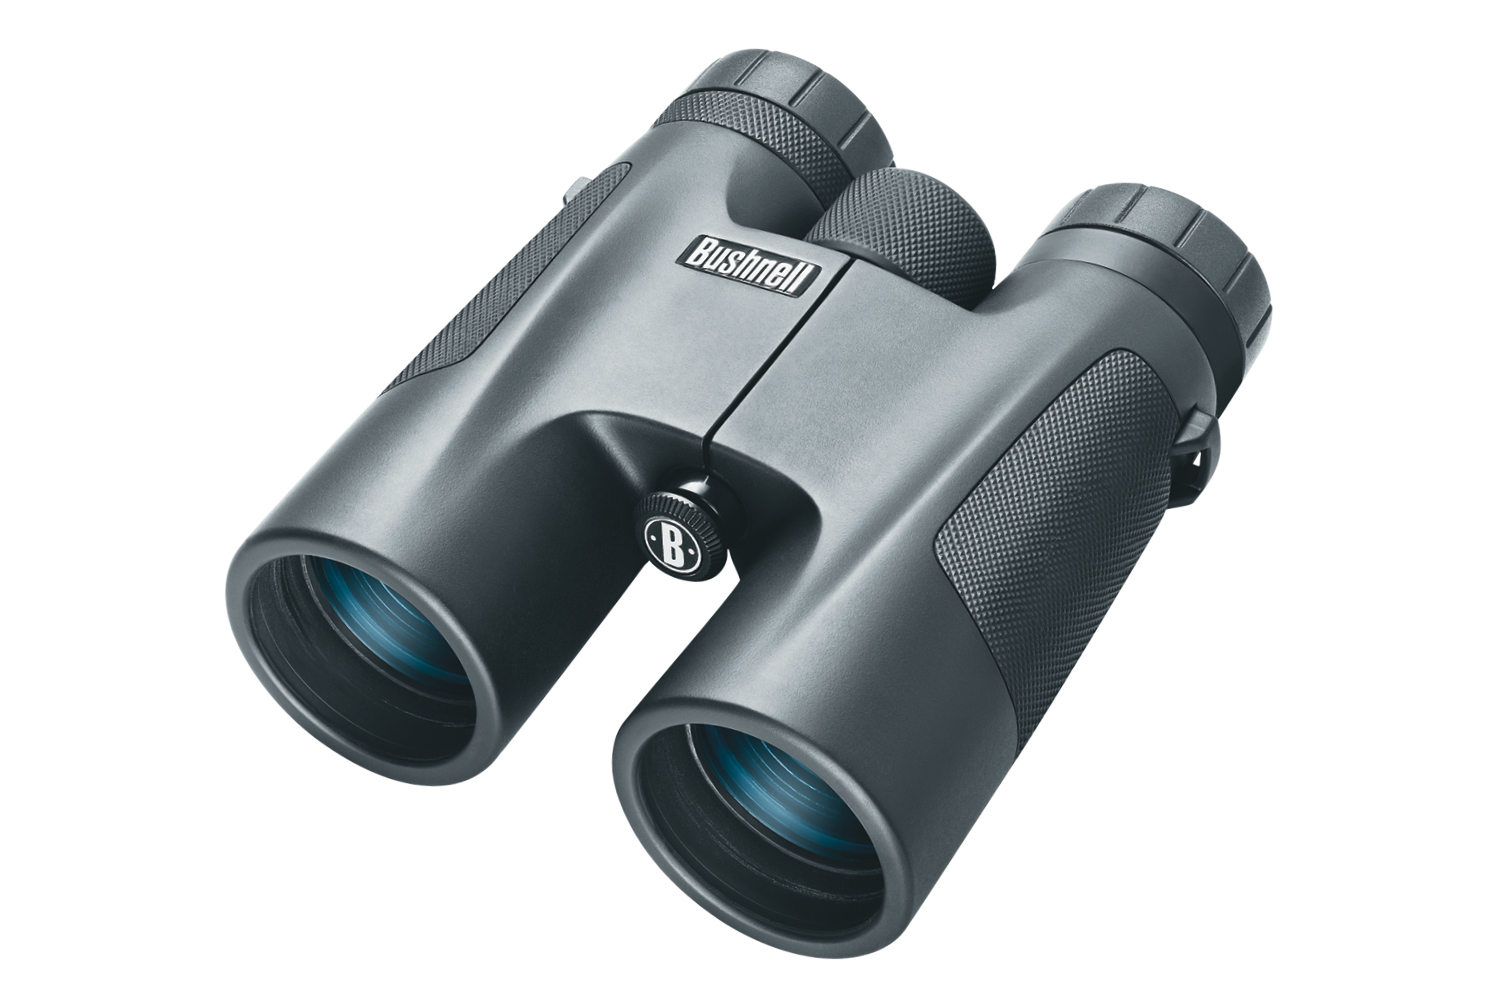 Бинокль Bushnell PowerView ROOF 8x42 бинокль yukon point 8x42